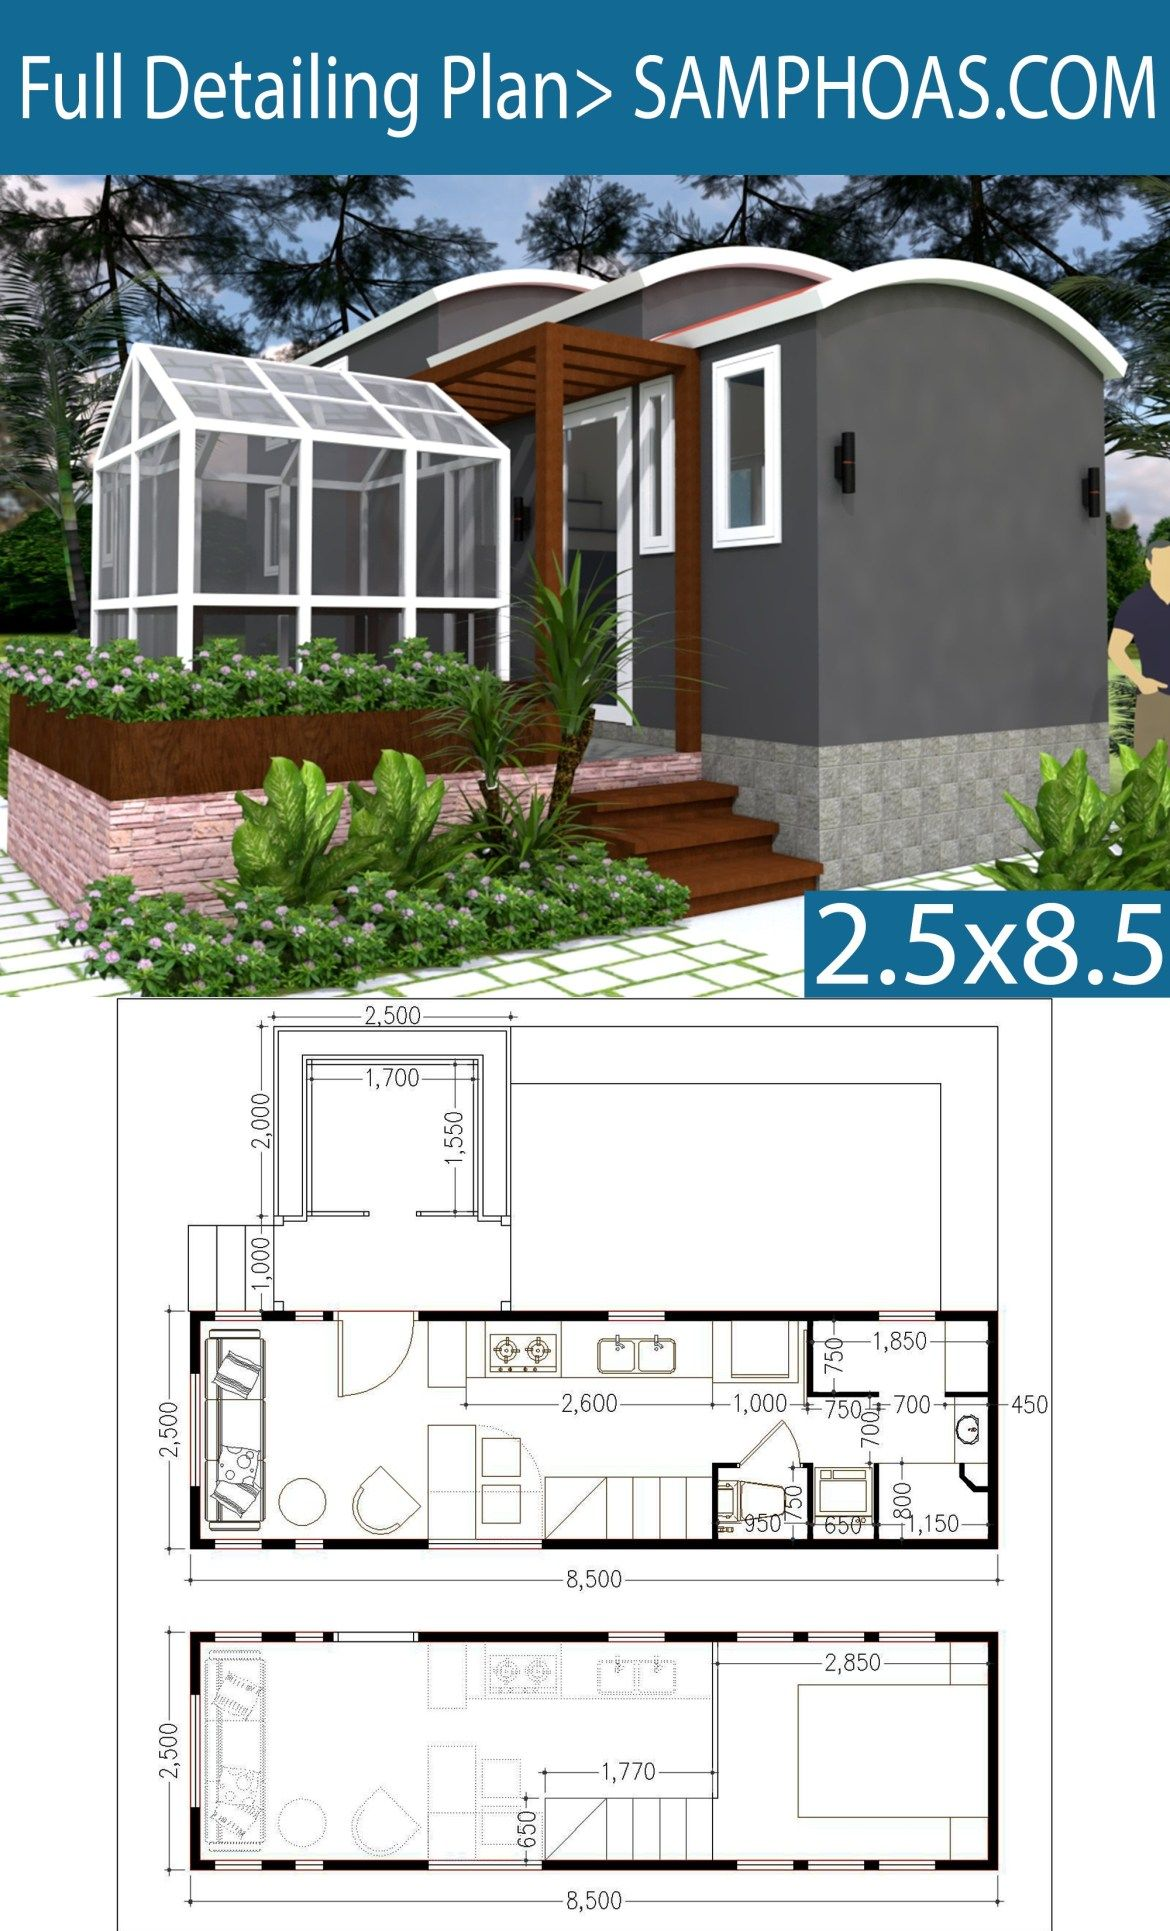 Dream Tiny House With Green House And Interior Design Samphoas Plansearch Eco House Plans Home Design Plans Greenhouse Plans